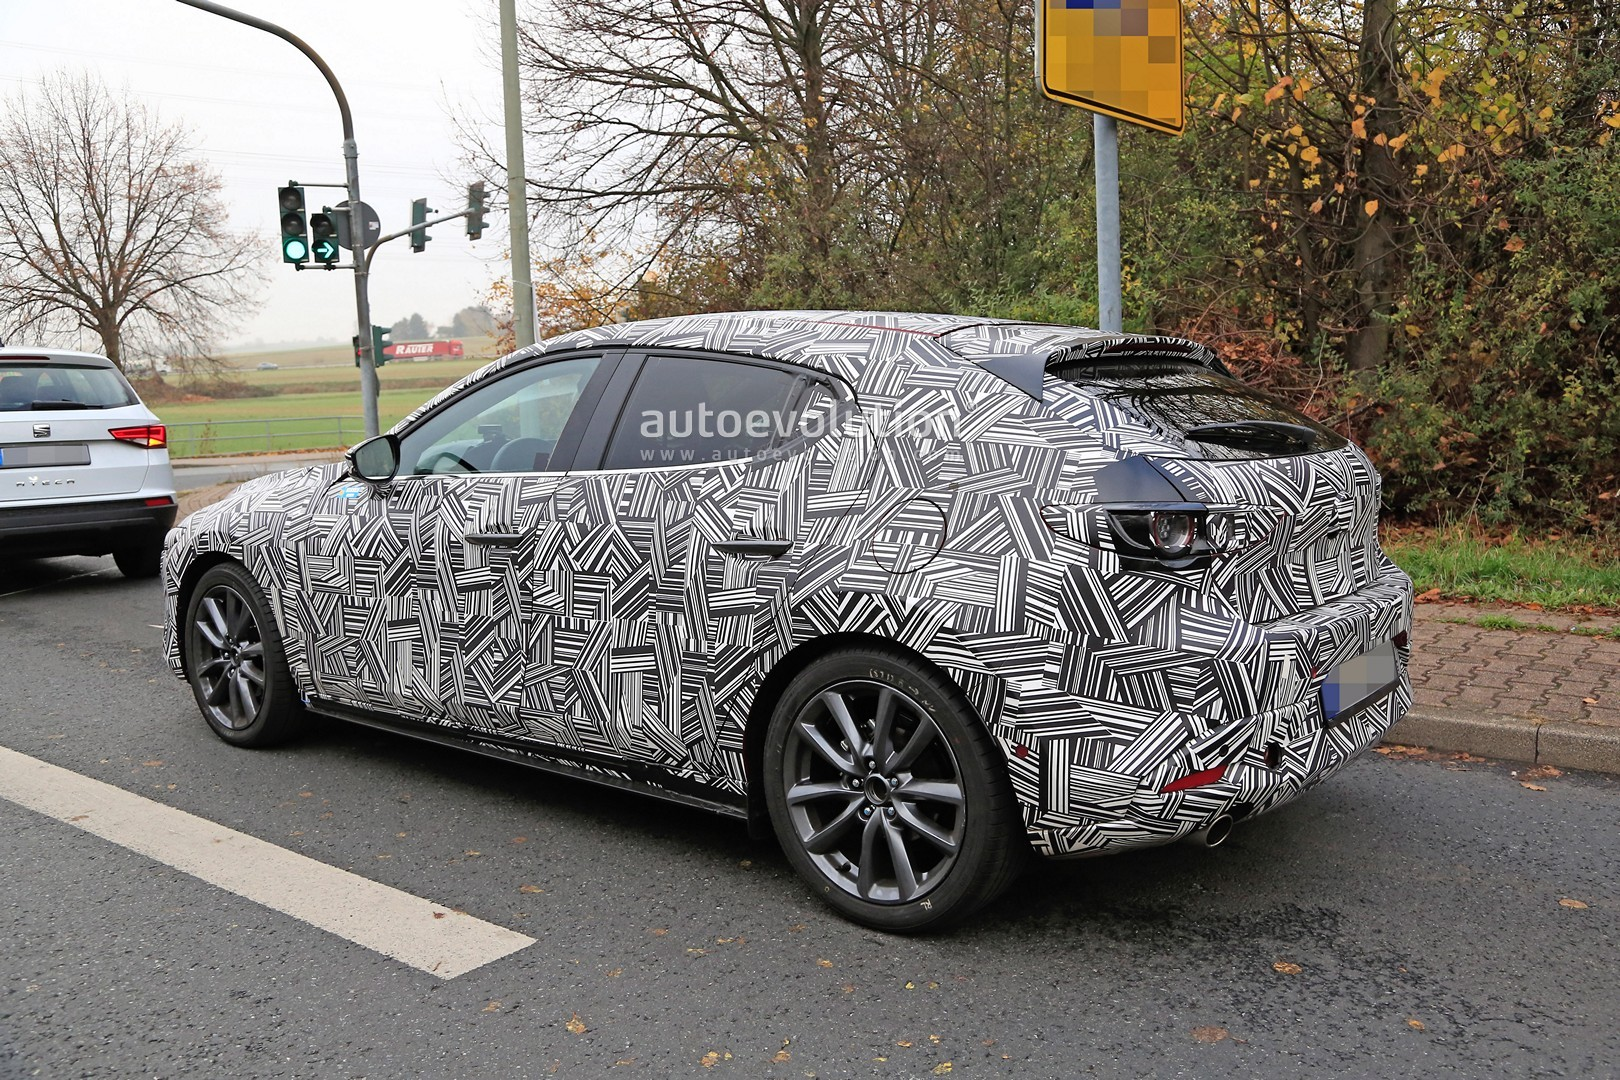 2020 mazda3 hatchback makes spyshot debut ahead of la unveiling